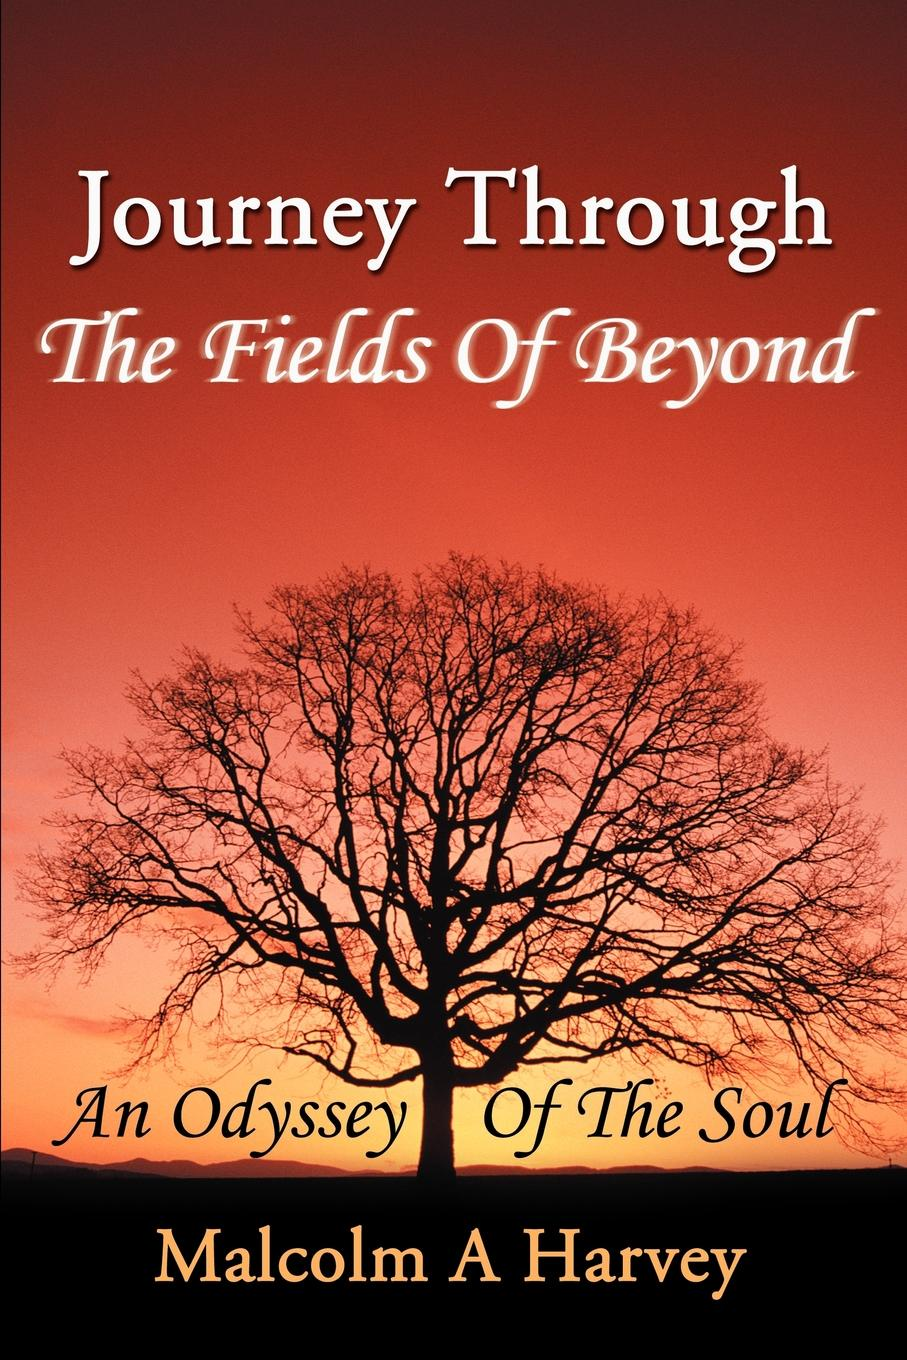 Malcolm A Harvey Journey Through The Fields Of Beyond An Odyssey Of The Soul